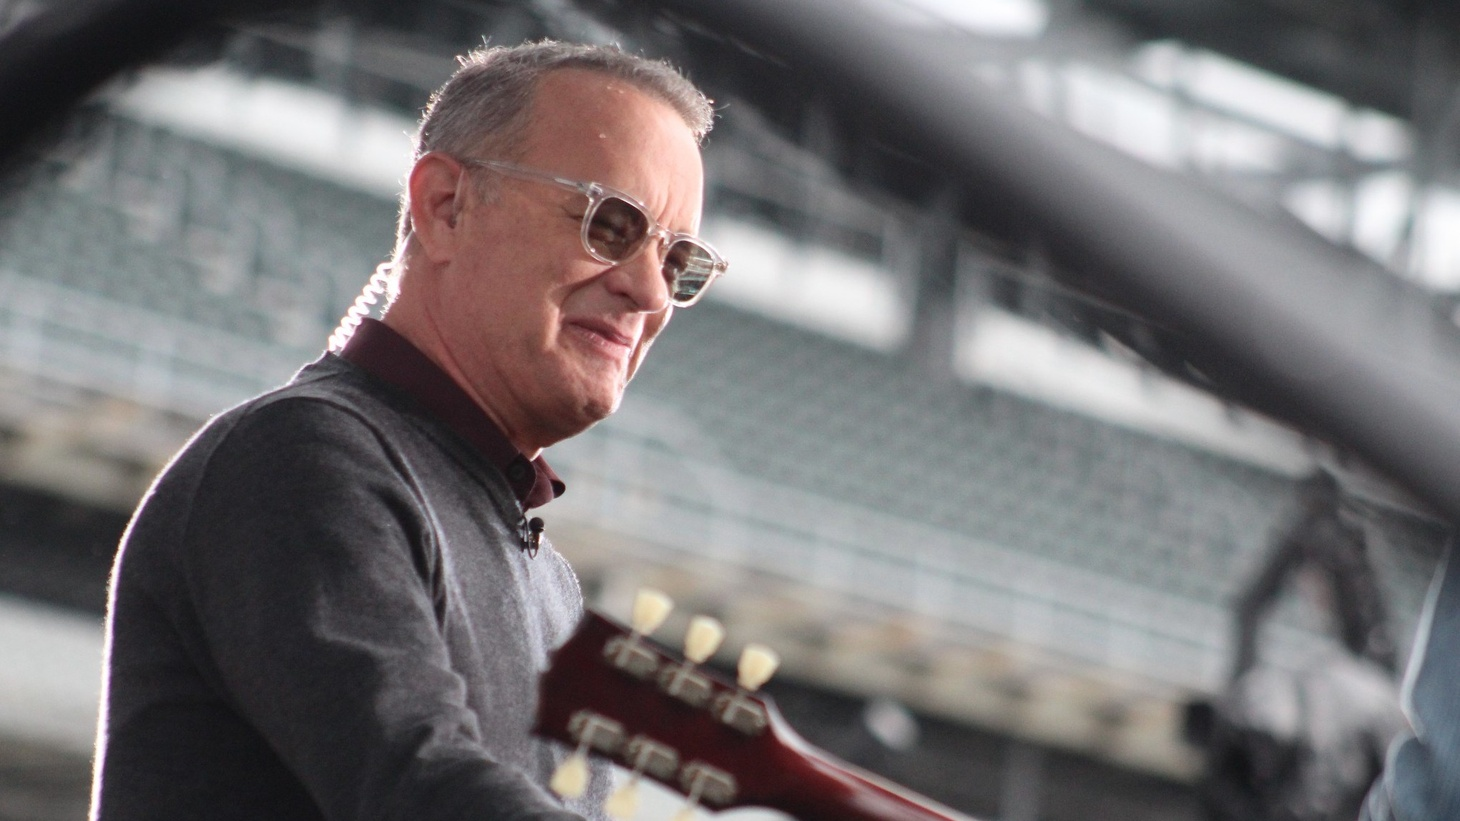 Tom Hanks has tested positive for COVID-19.